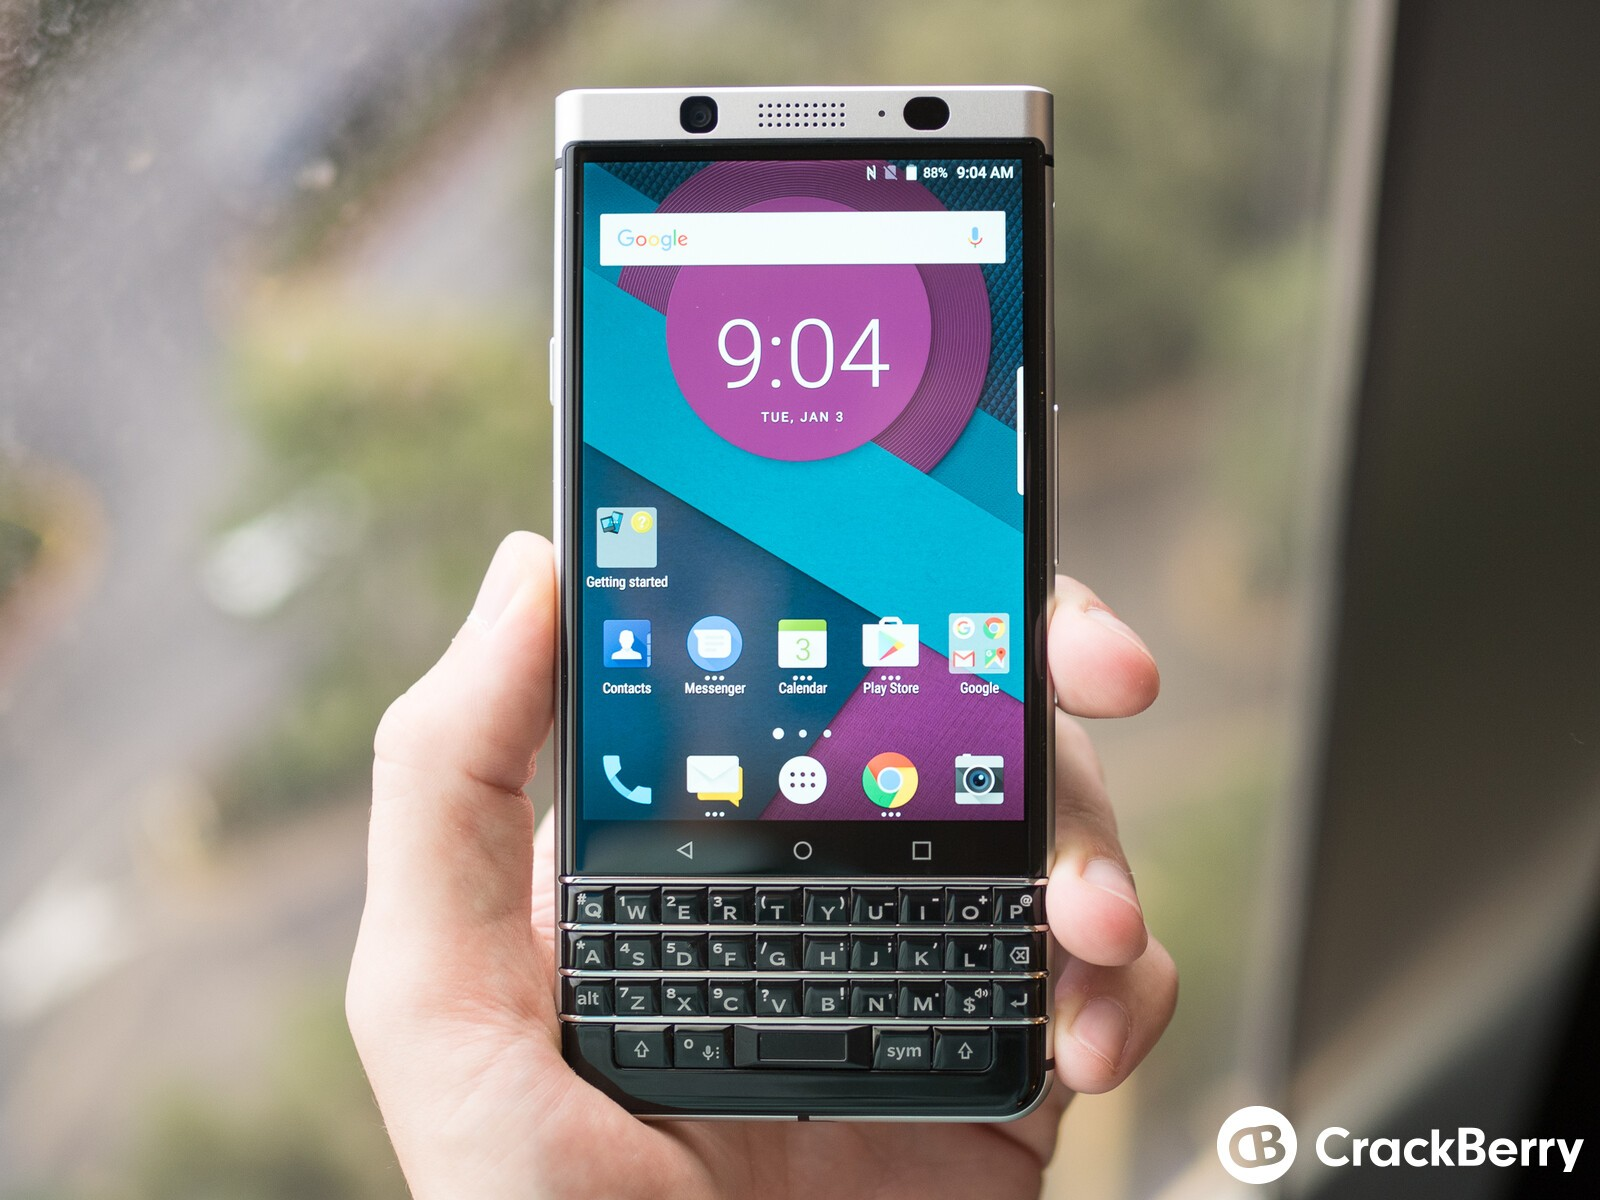 http://crackberry.com/sites/crackberry.com/files/styles/xlarge_wm_brw/public/article_images/2017/01/blackberry-mercury-pre-production-12.jpg